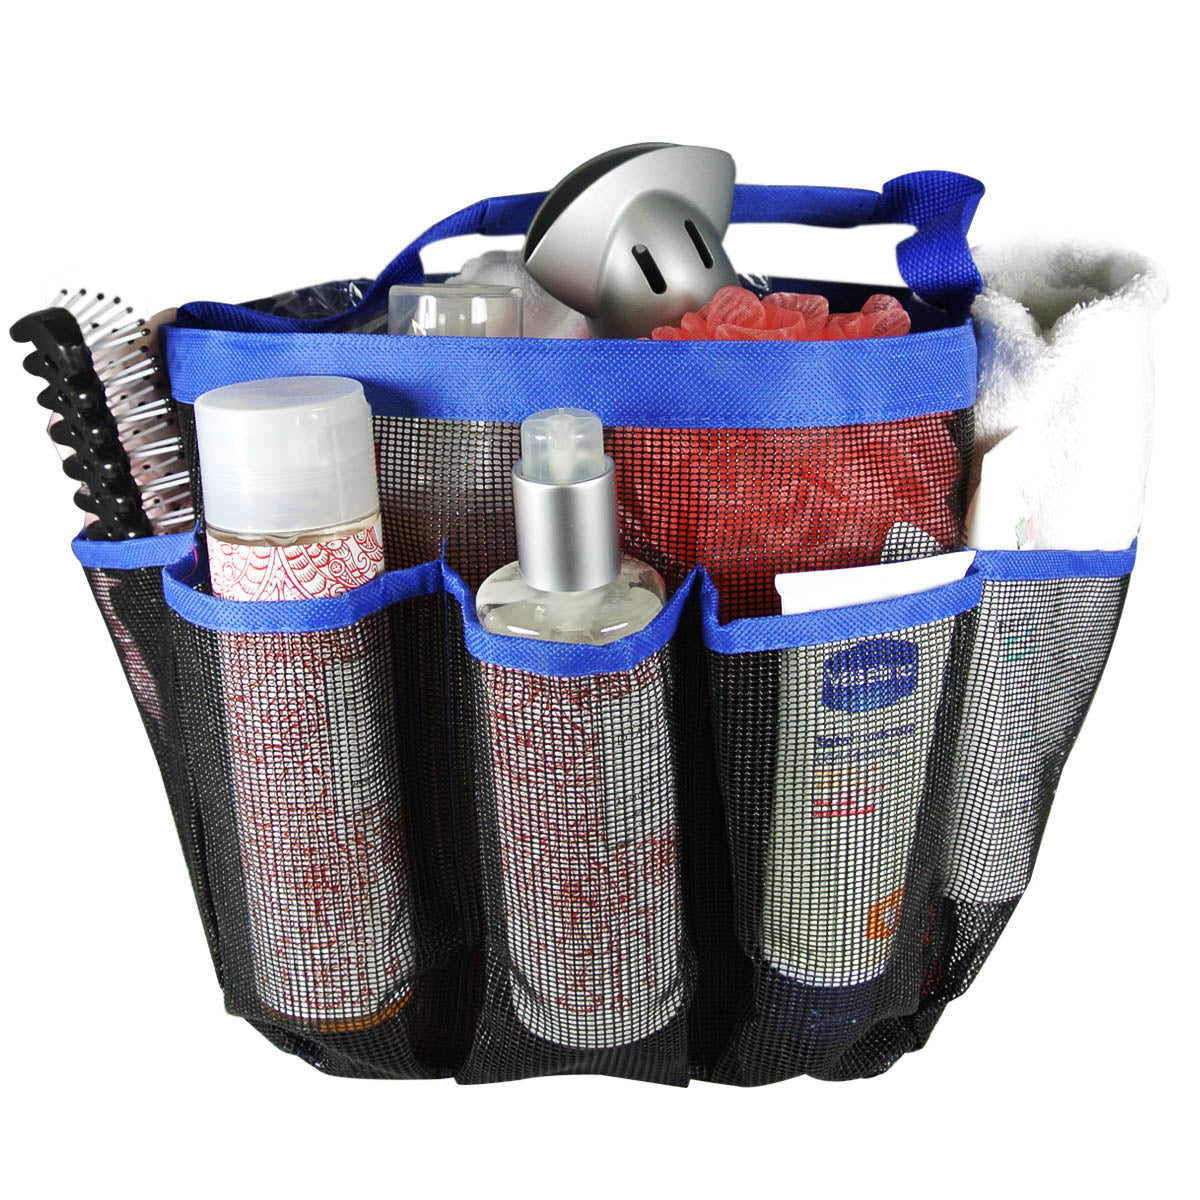 Quick Dry Portable Mesh shower Caddy/Tote/Organizer